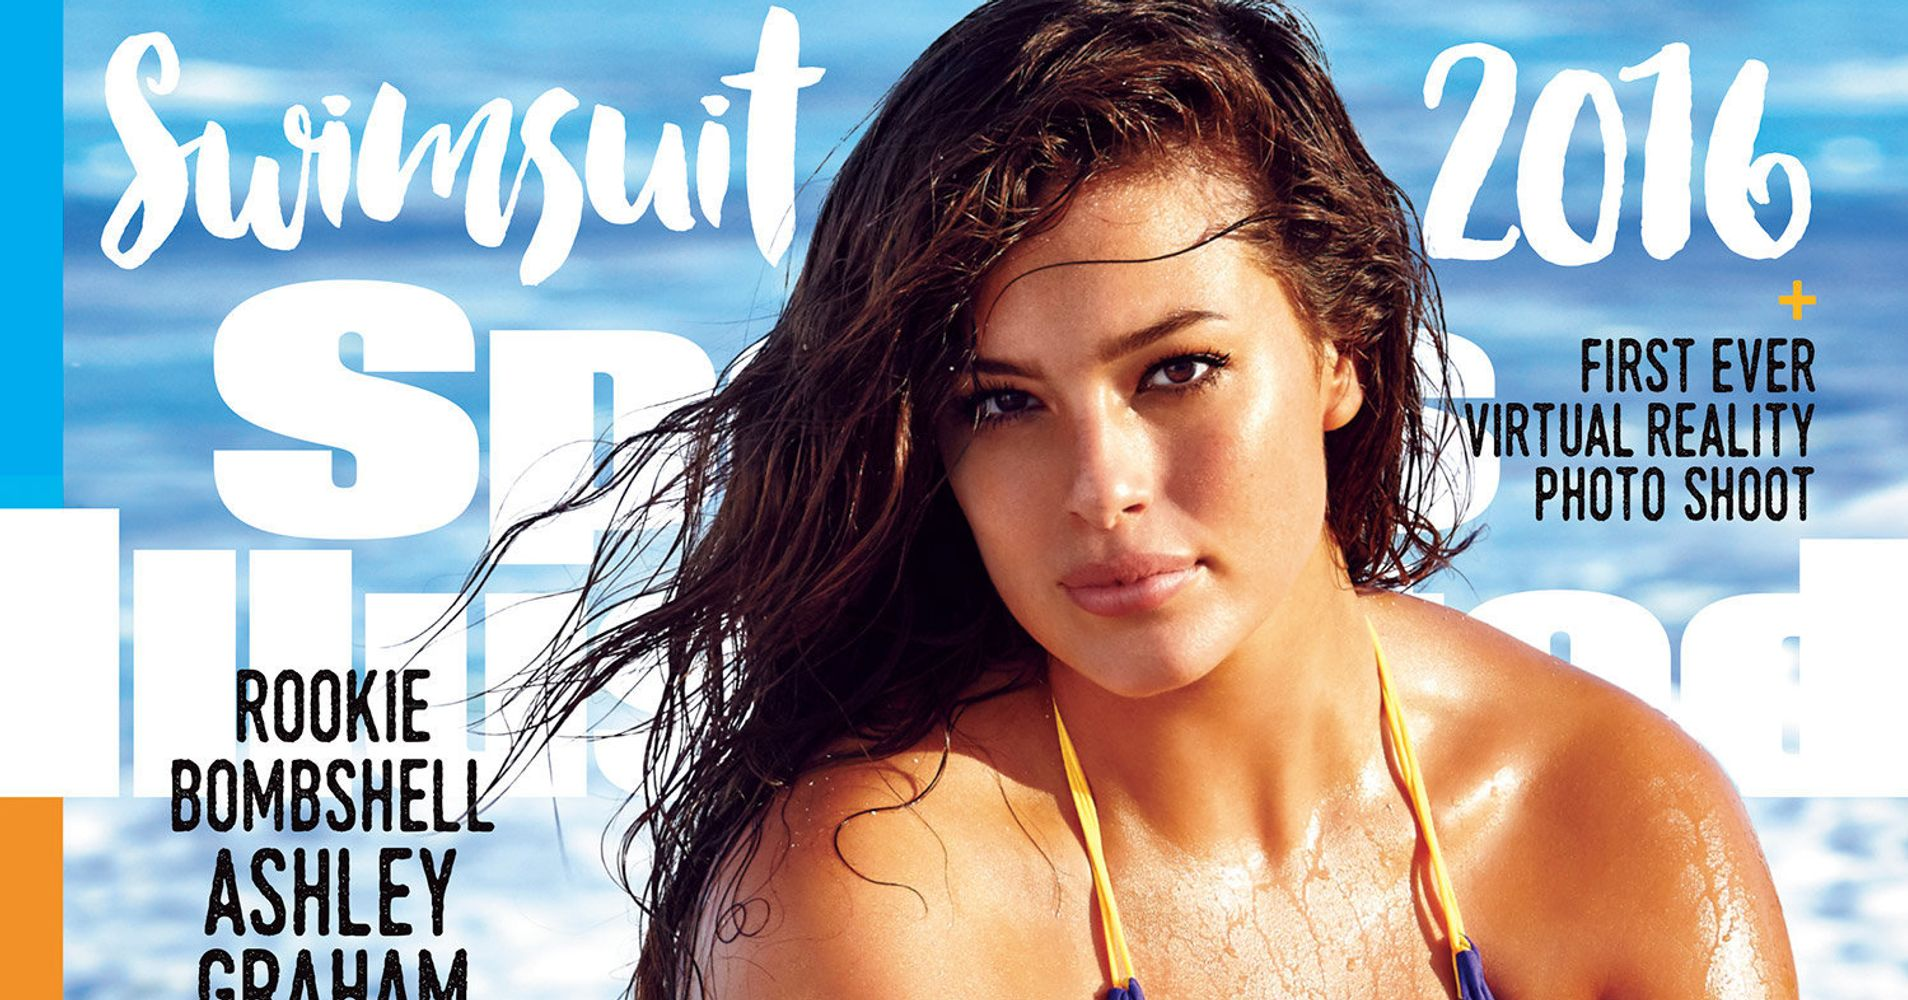 3b6f49ba7e6a0 Sports Illustrated Just Made History By Putting A Plus-Size Model On Its  Cover